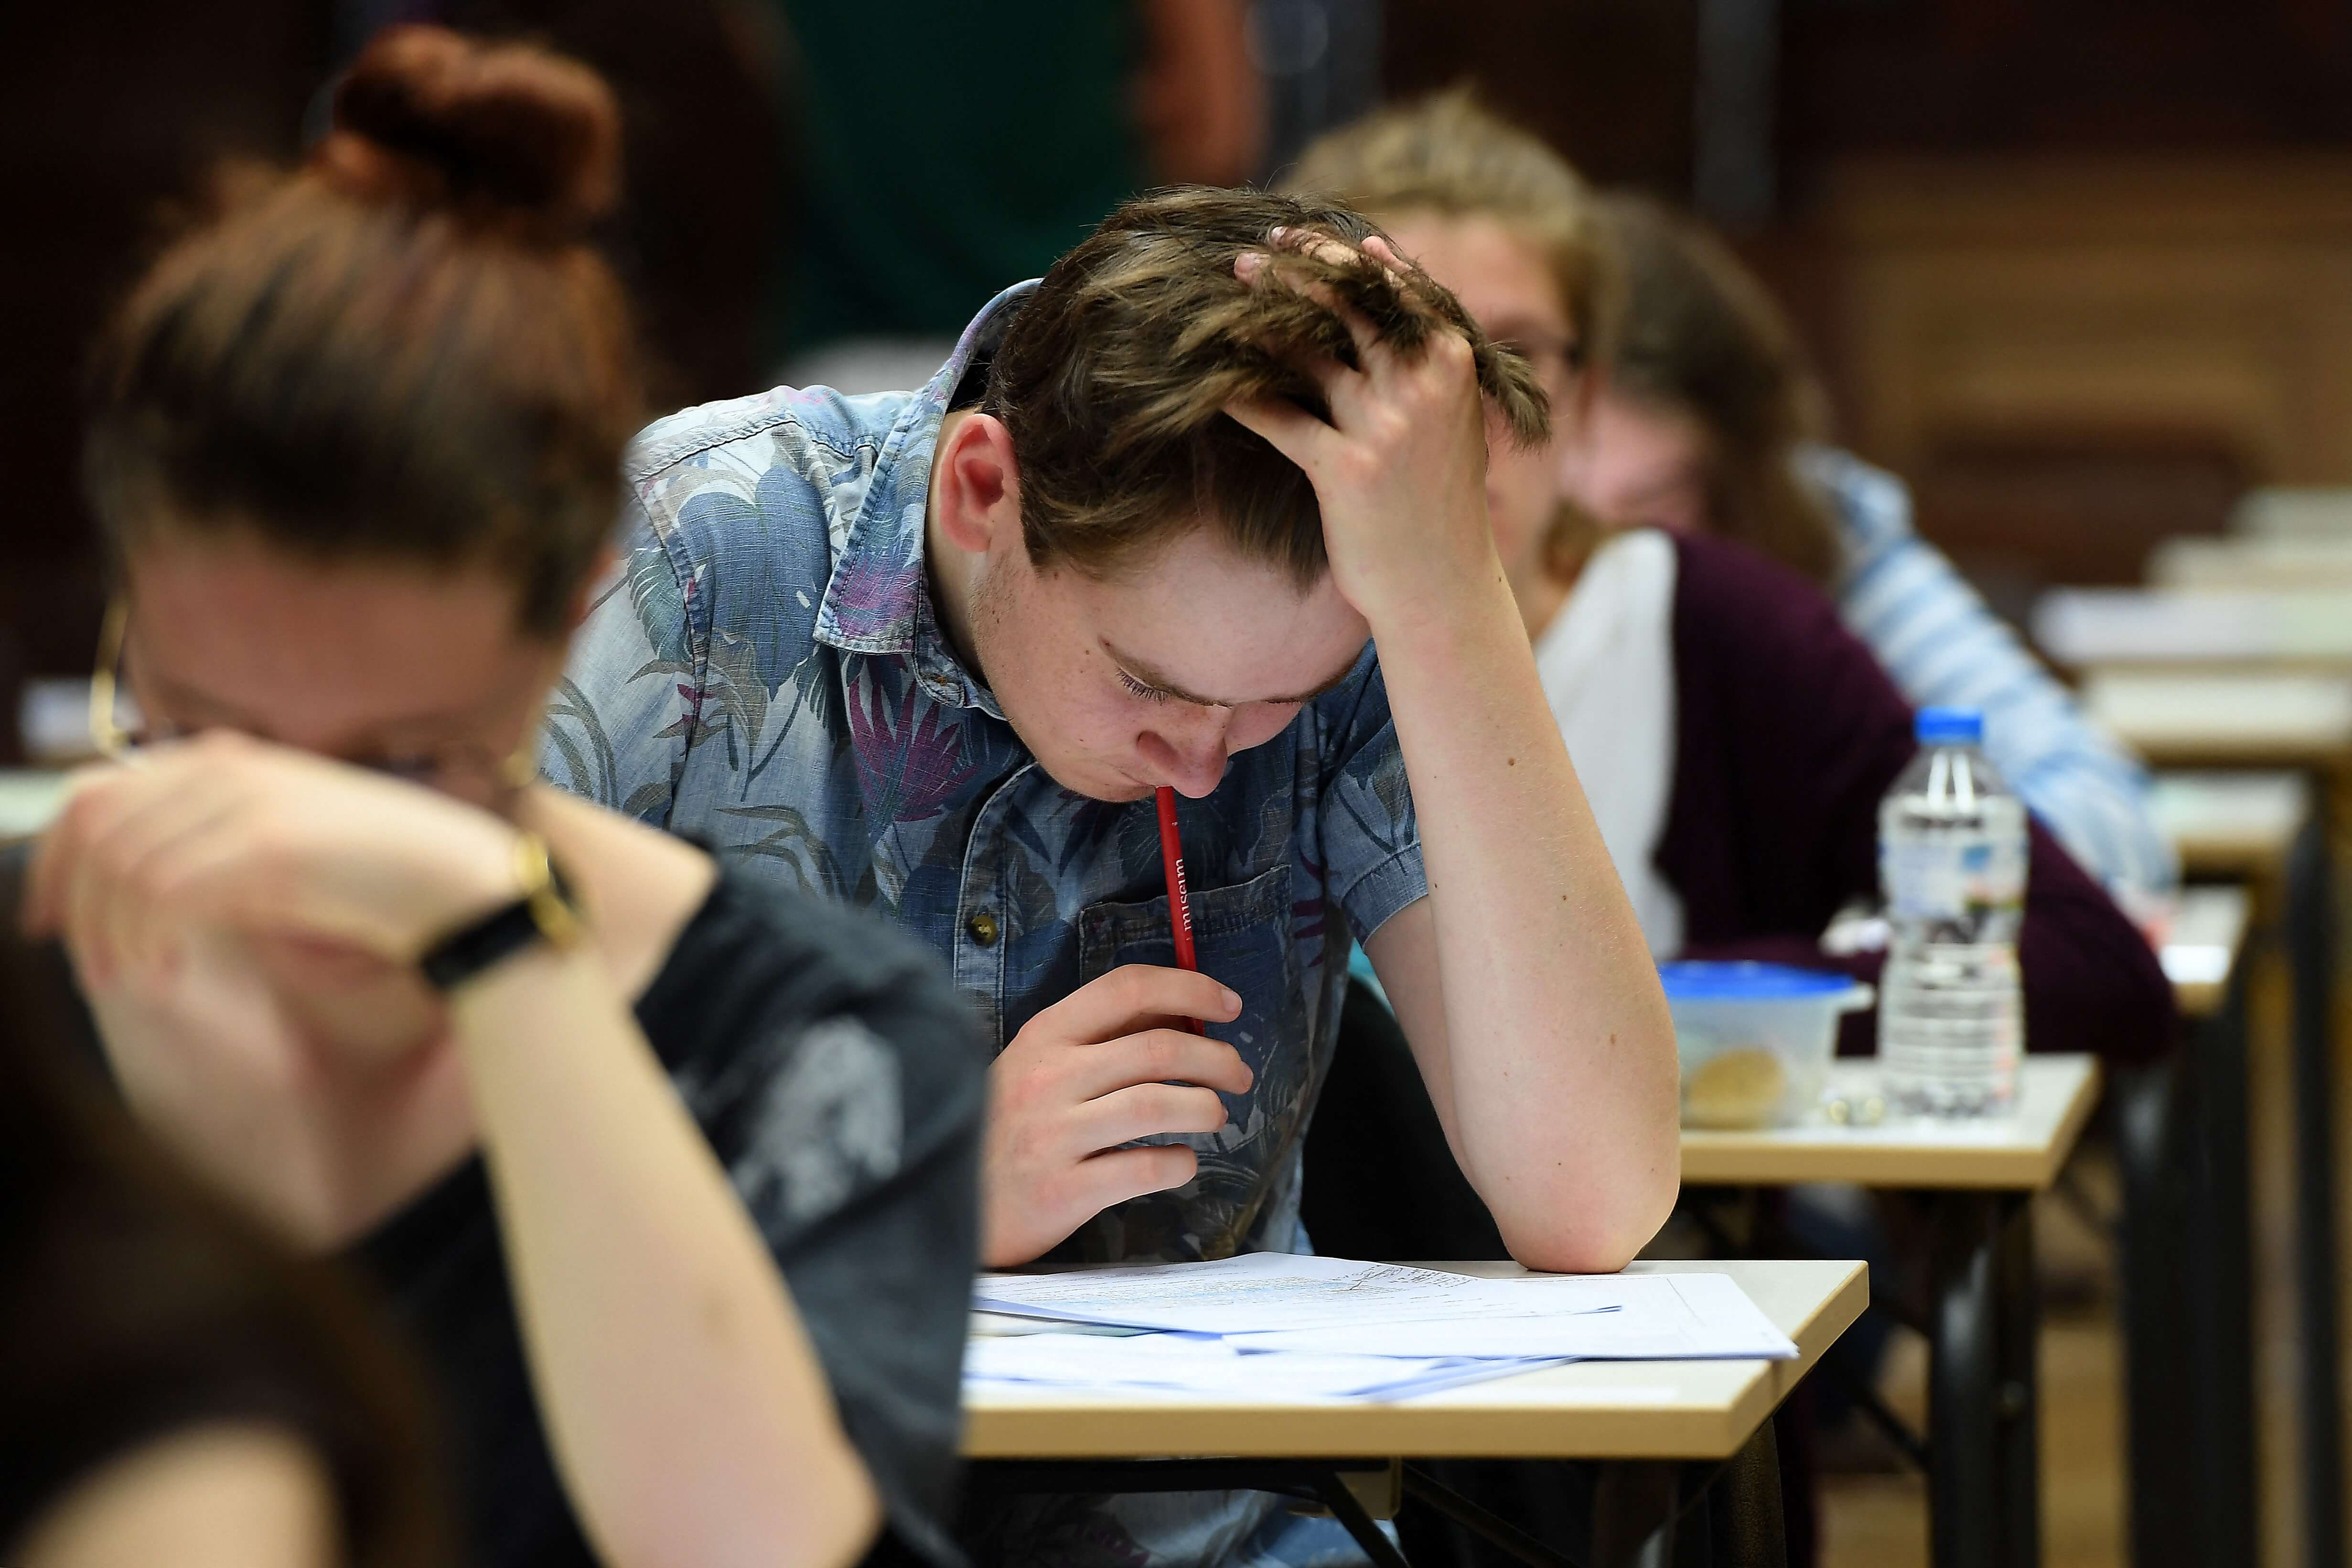 Low GMAT score? Here are 5 things you can do